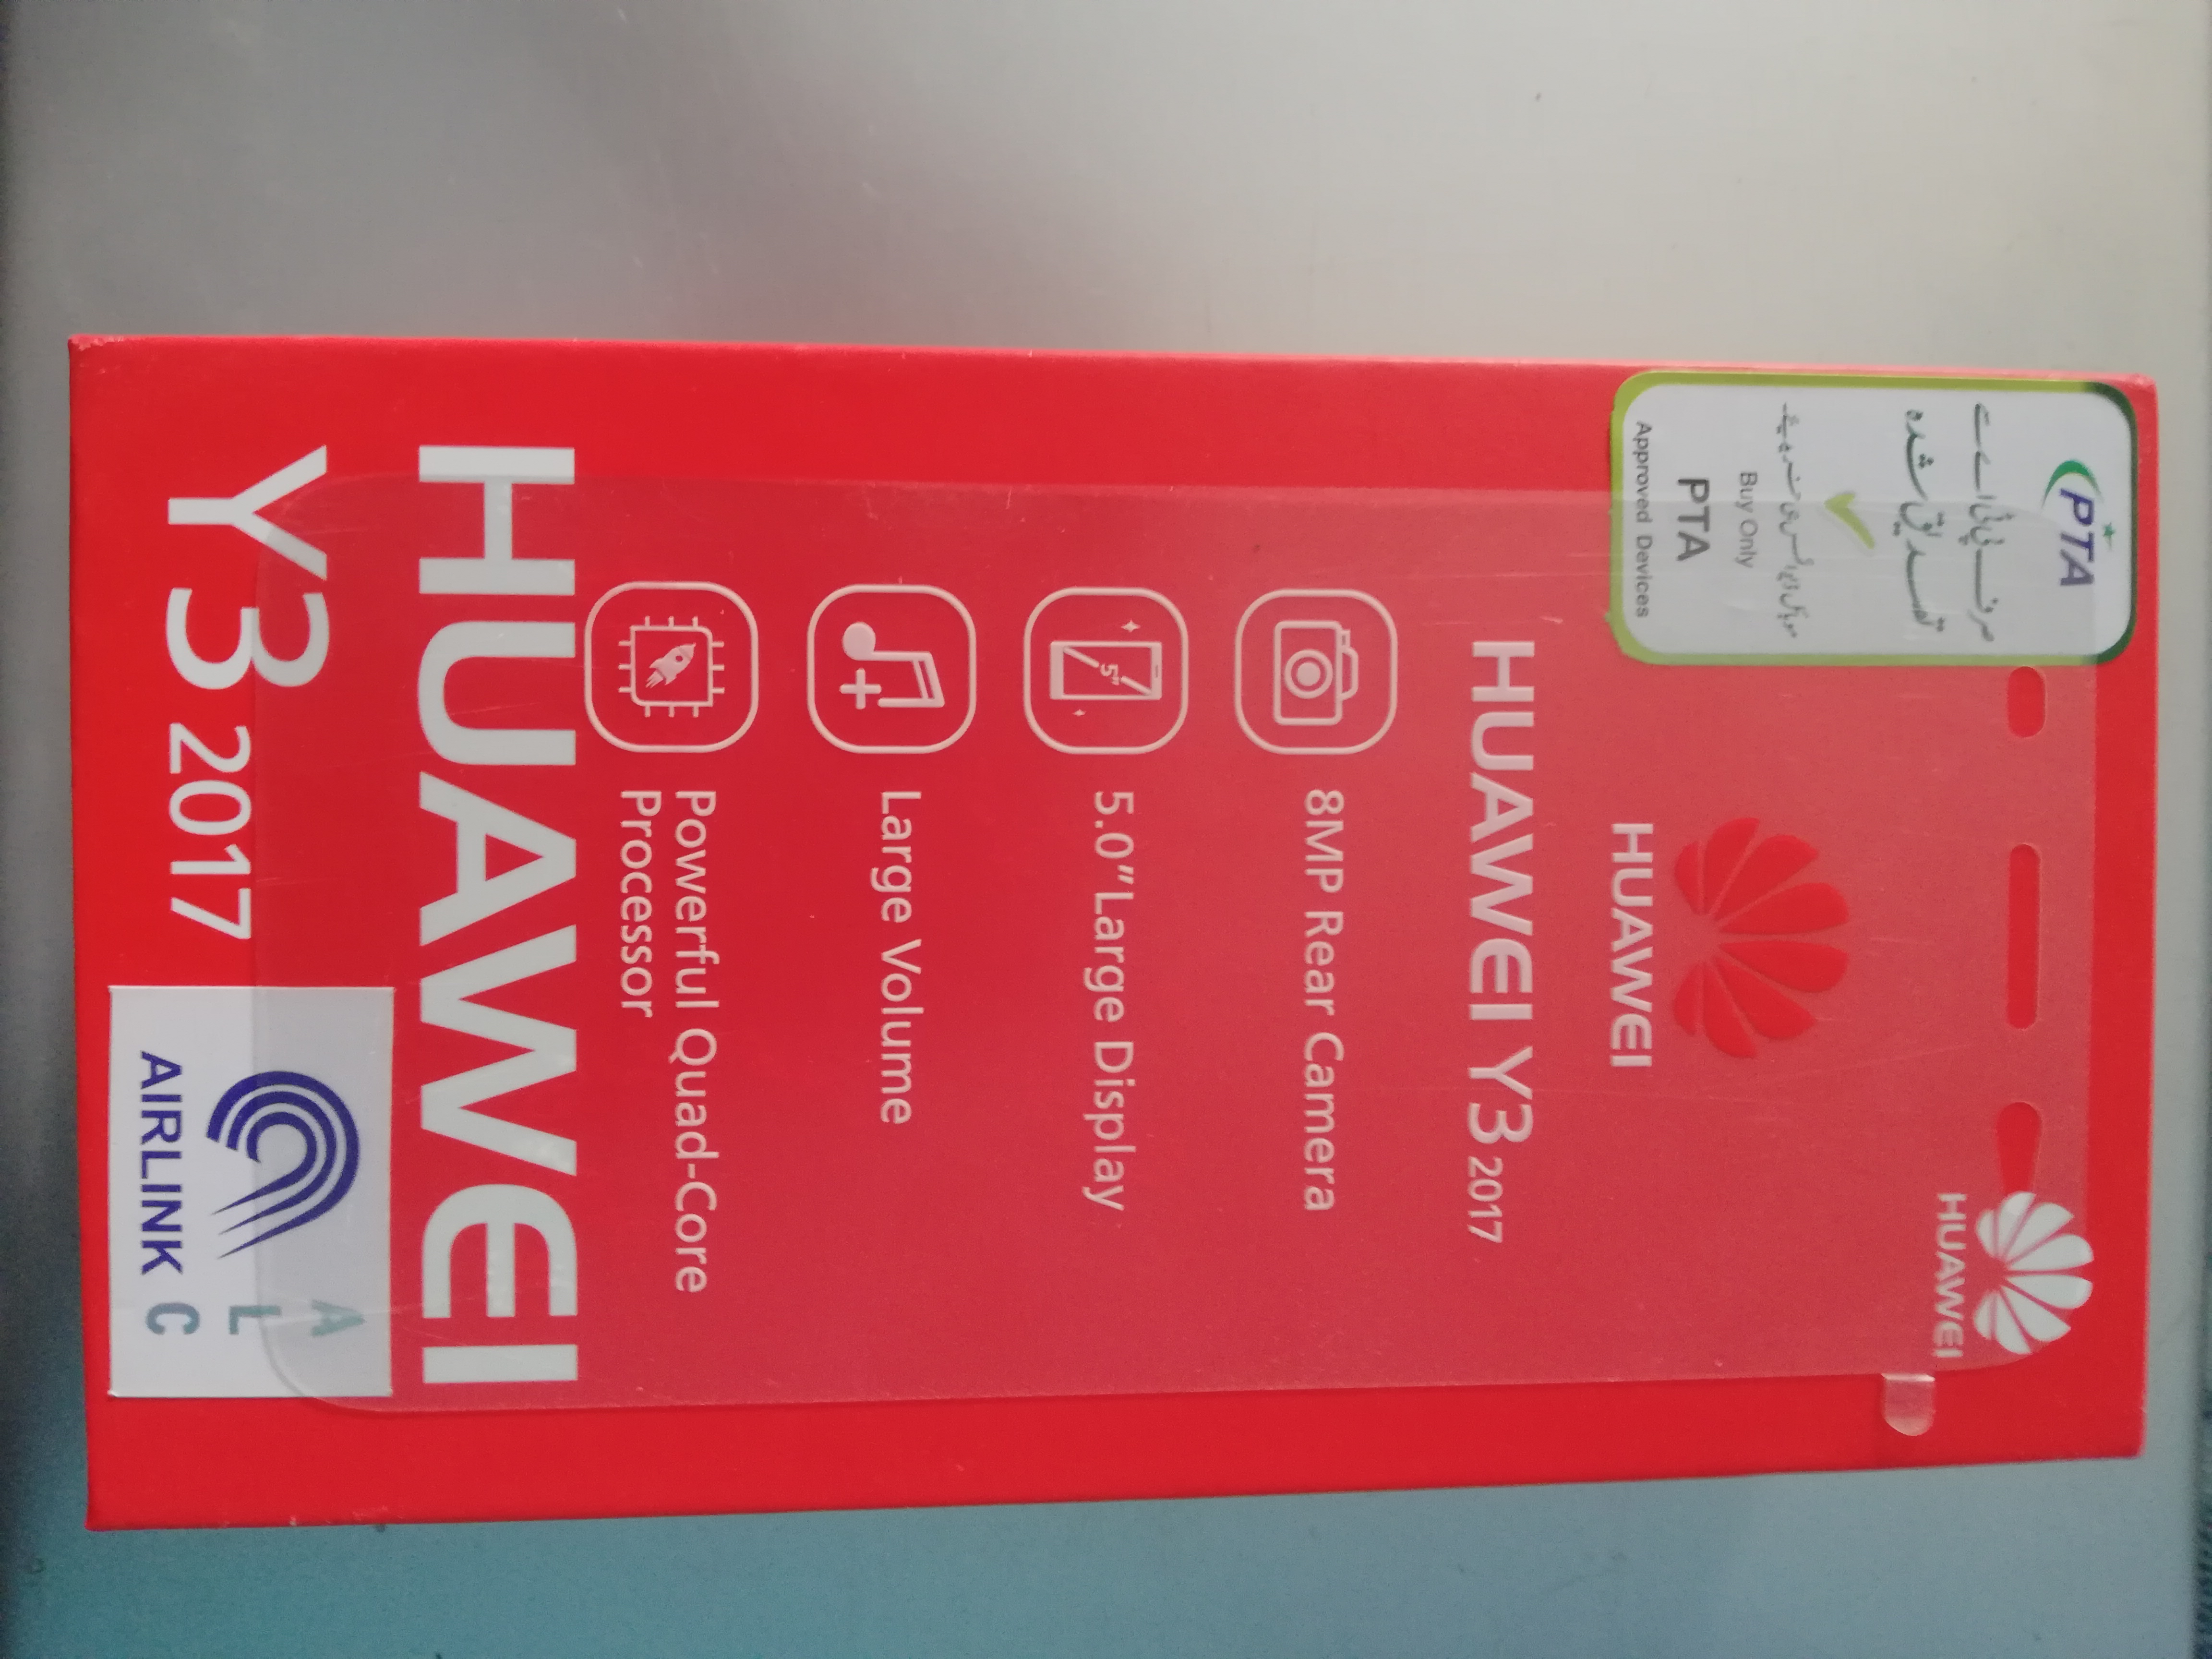 Huawei Y3 2017 for sale 10/10 with 6 months warranty - photo 1